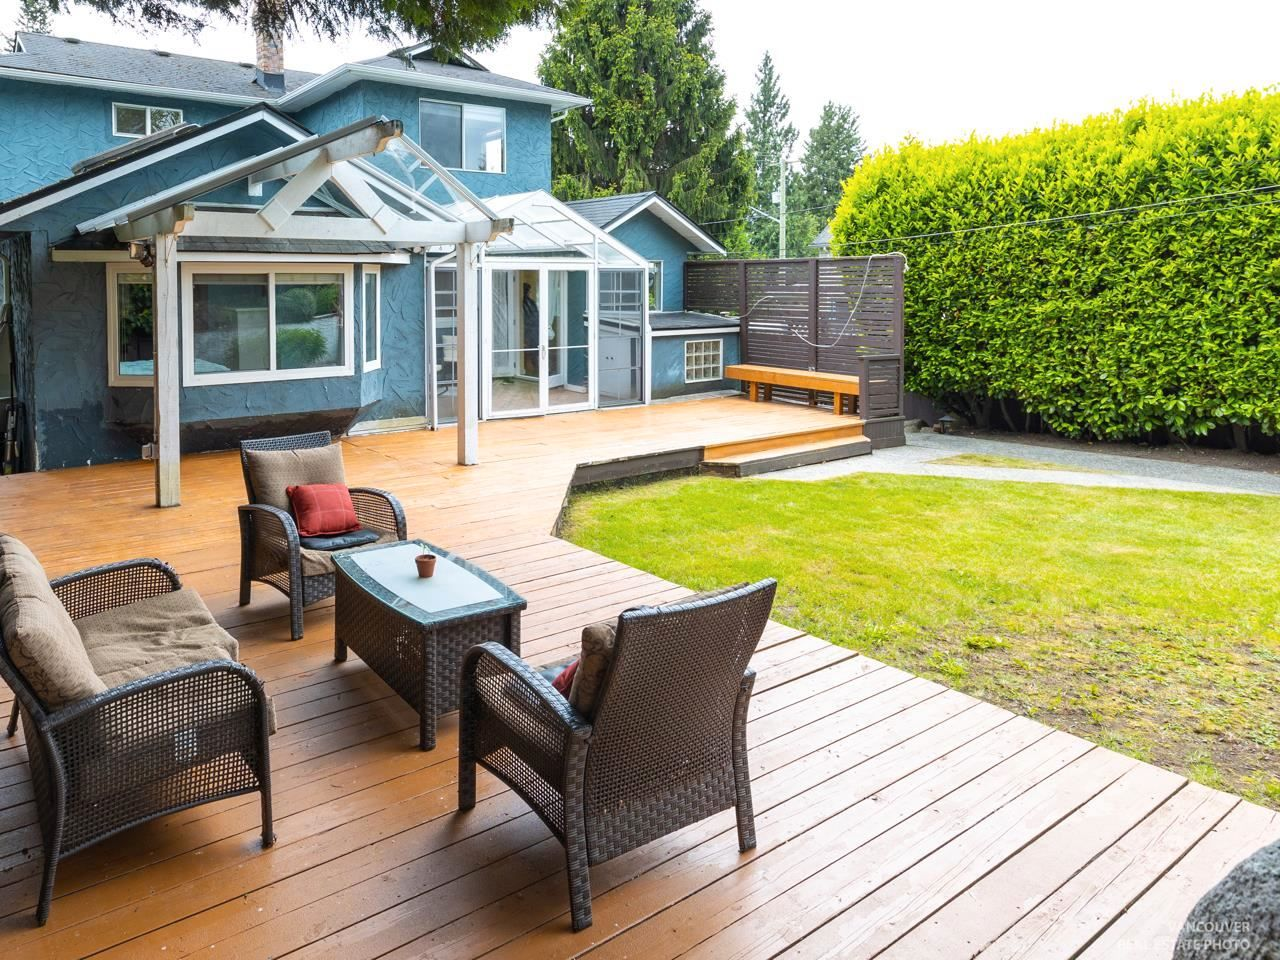 Main Photo: 206 W 23RD Street in North Vancouver: Central Lonsdale House for sale : MLS®# R2605422